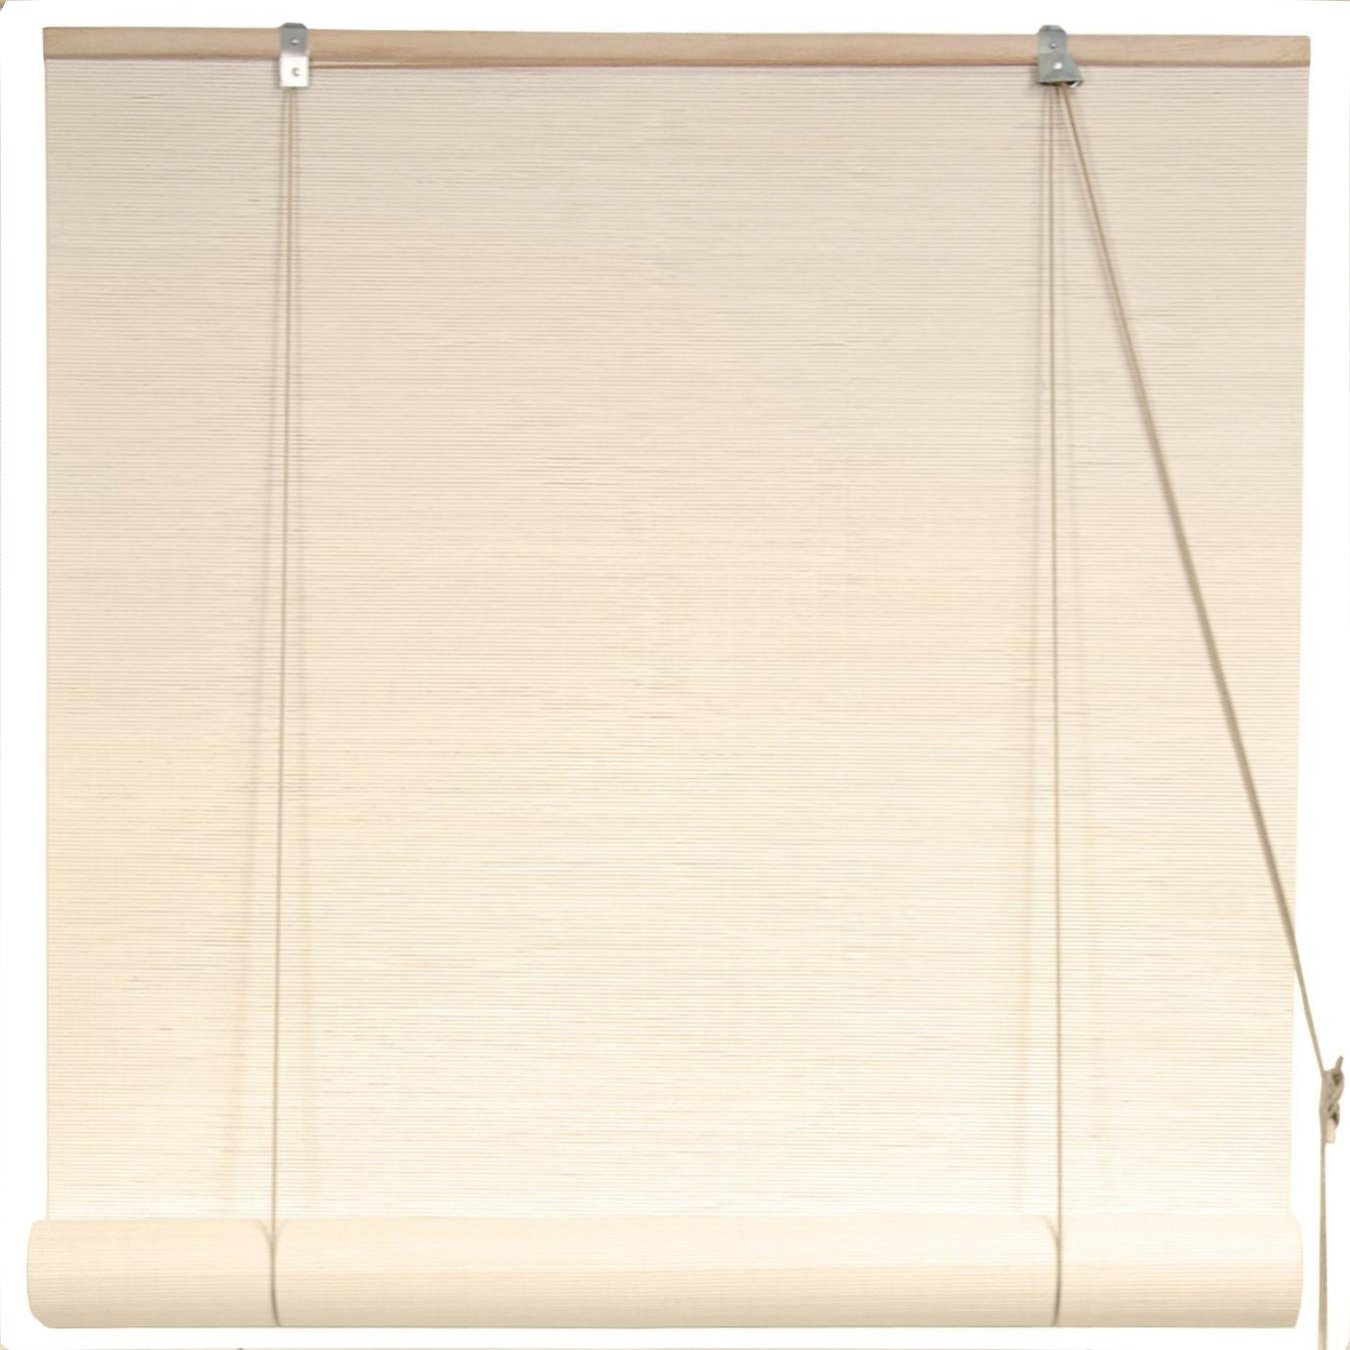 Paper Bamboo Blinds Cream Bamboo Blinds 36